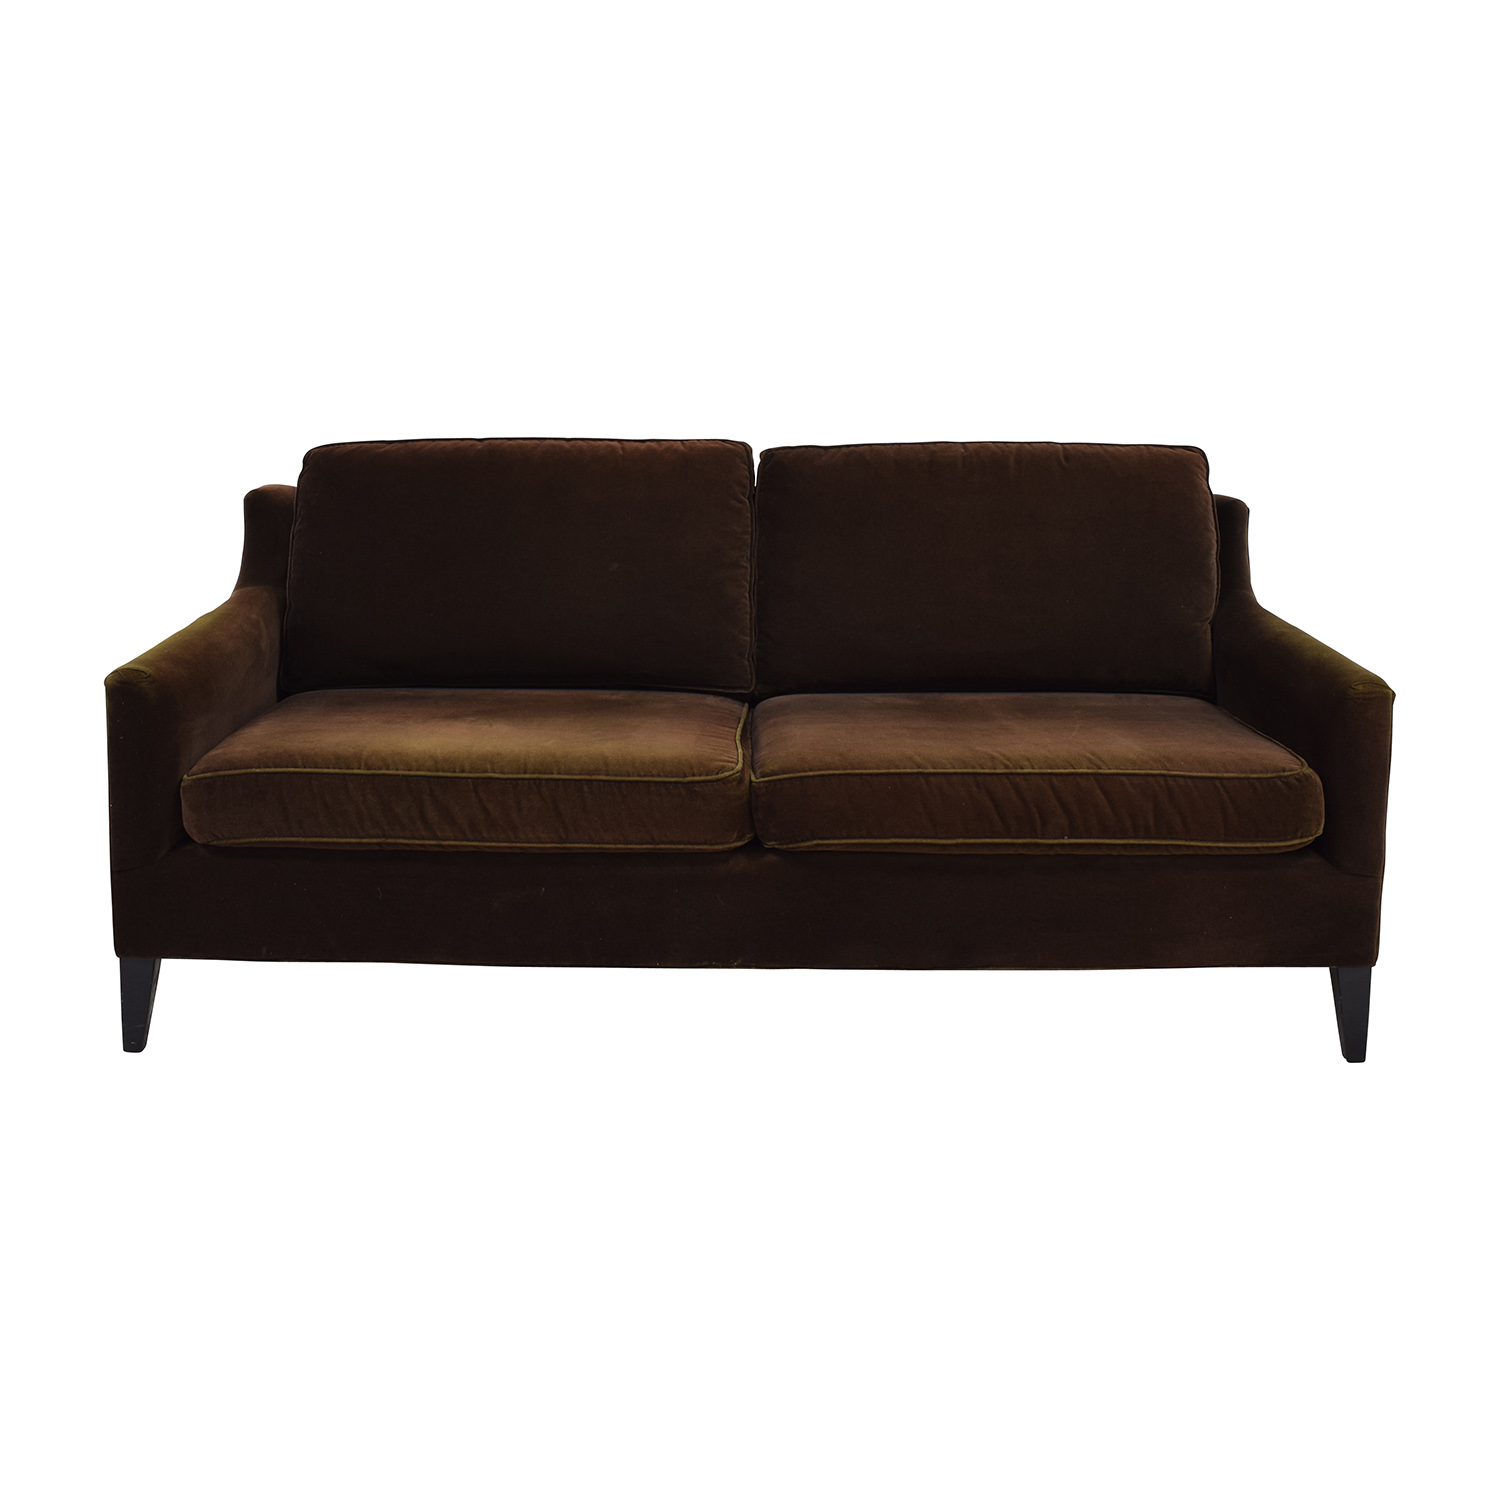 Beau Dark Brown Velvet Two Cushion Sofa Brown ...